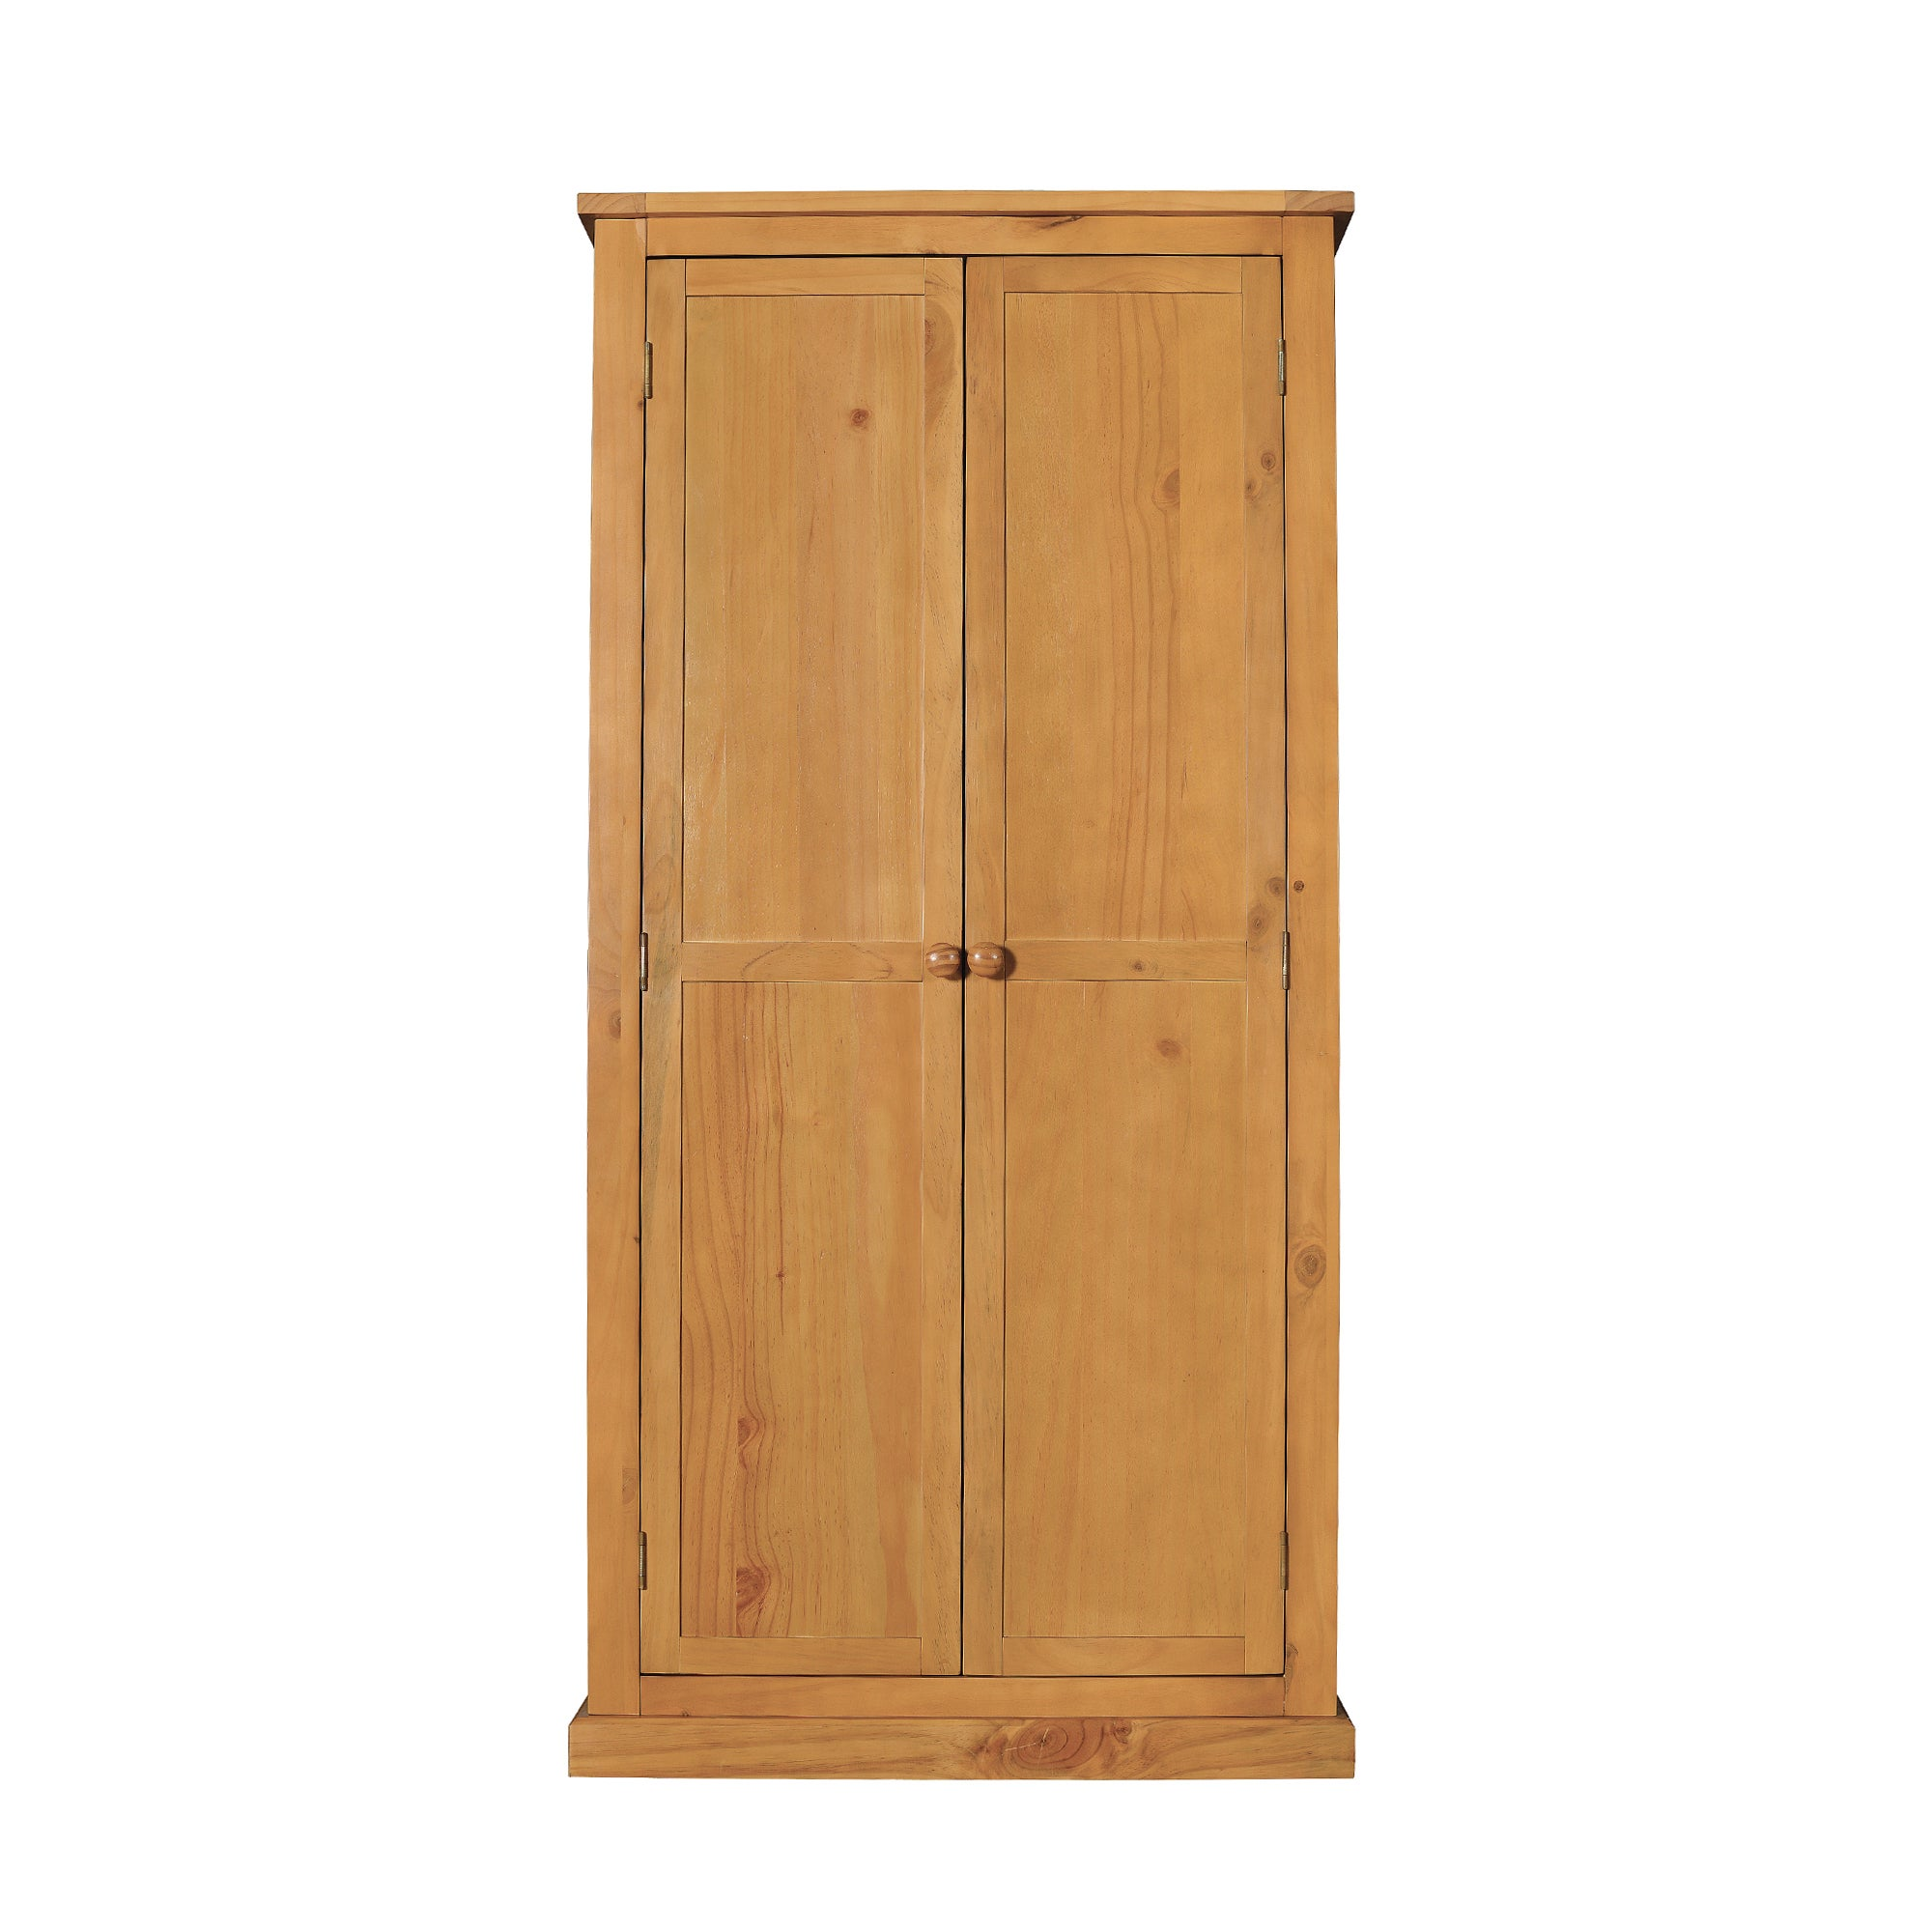 Newhaven Pine Full Length Wardrobe